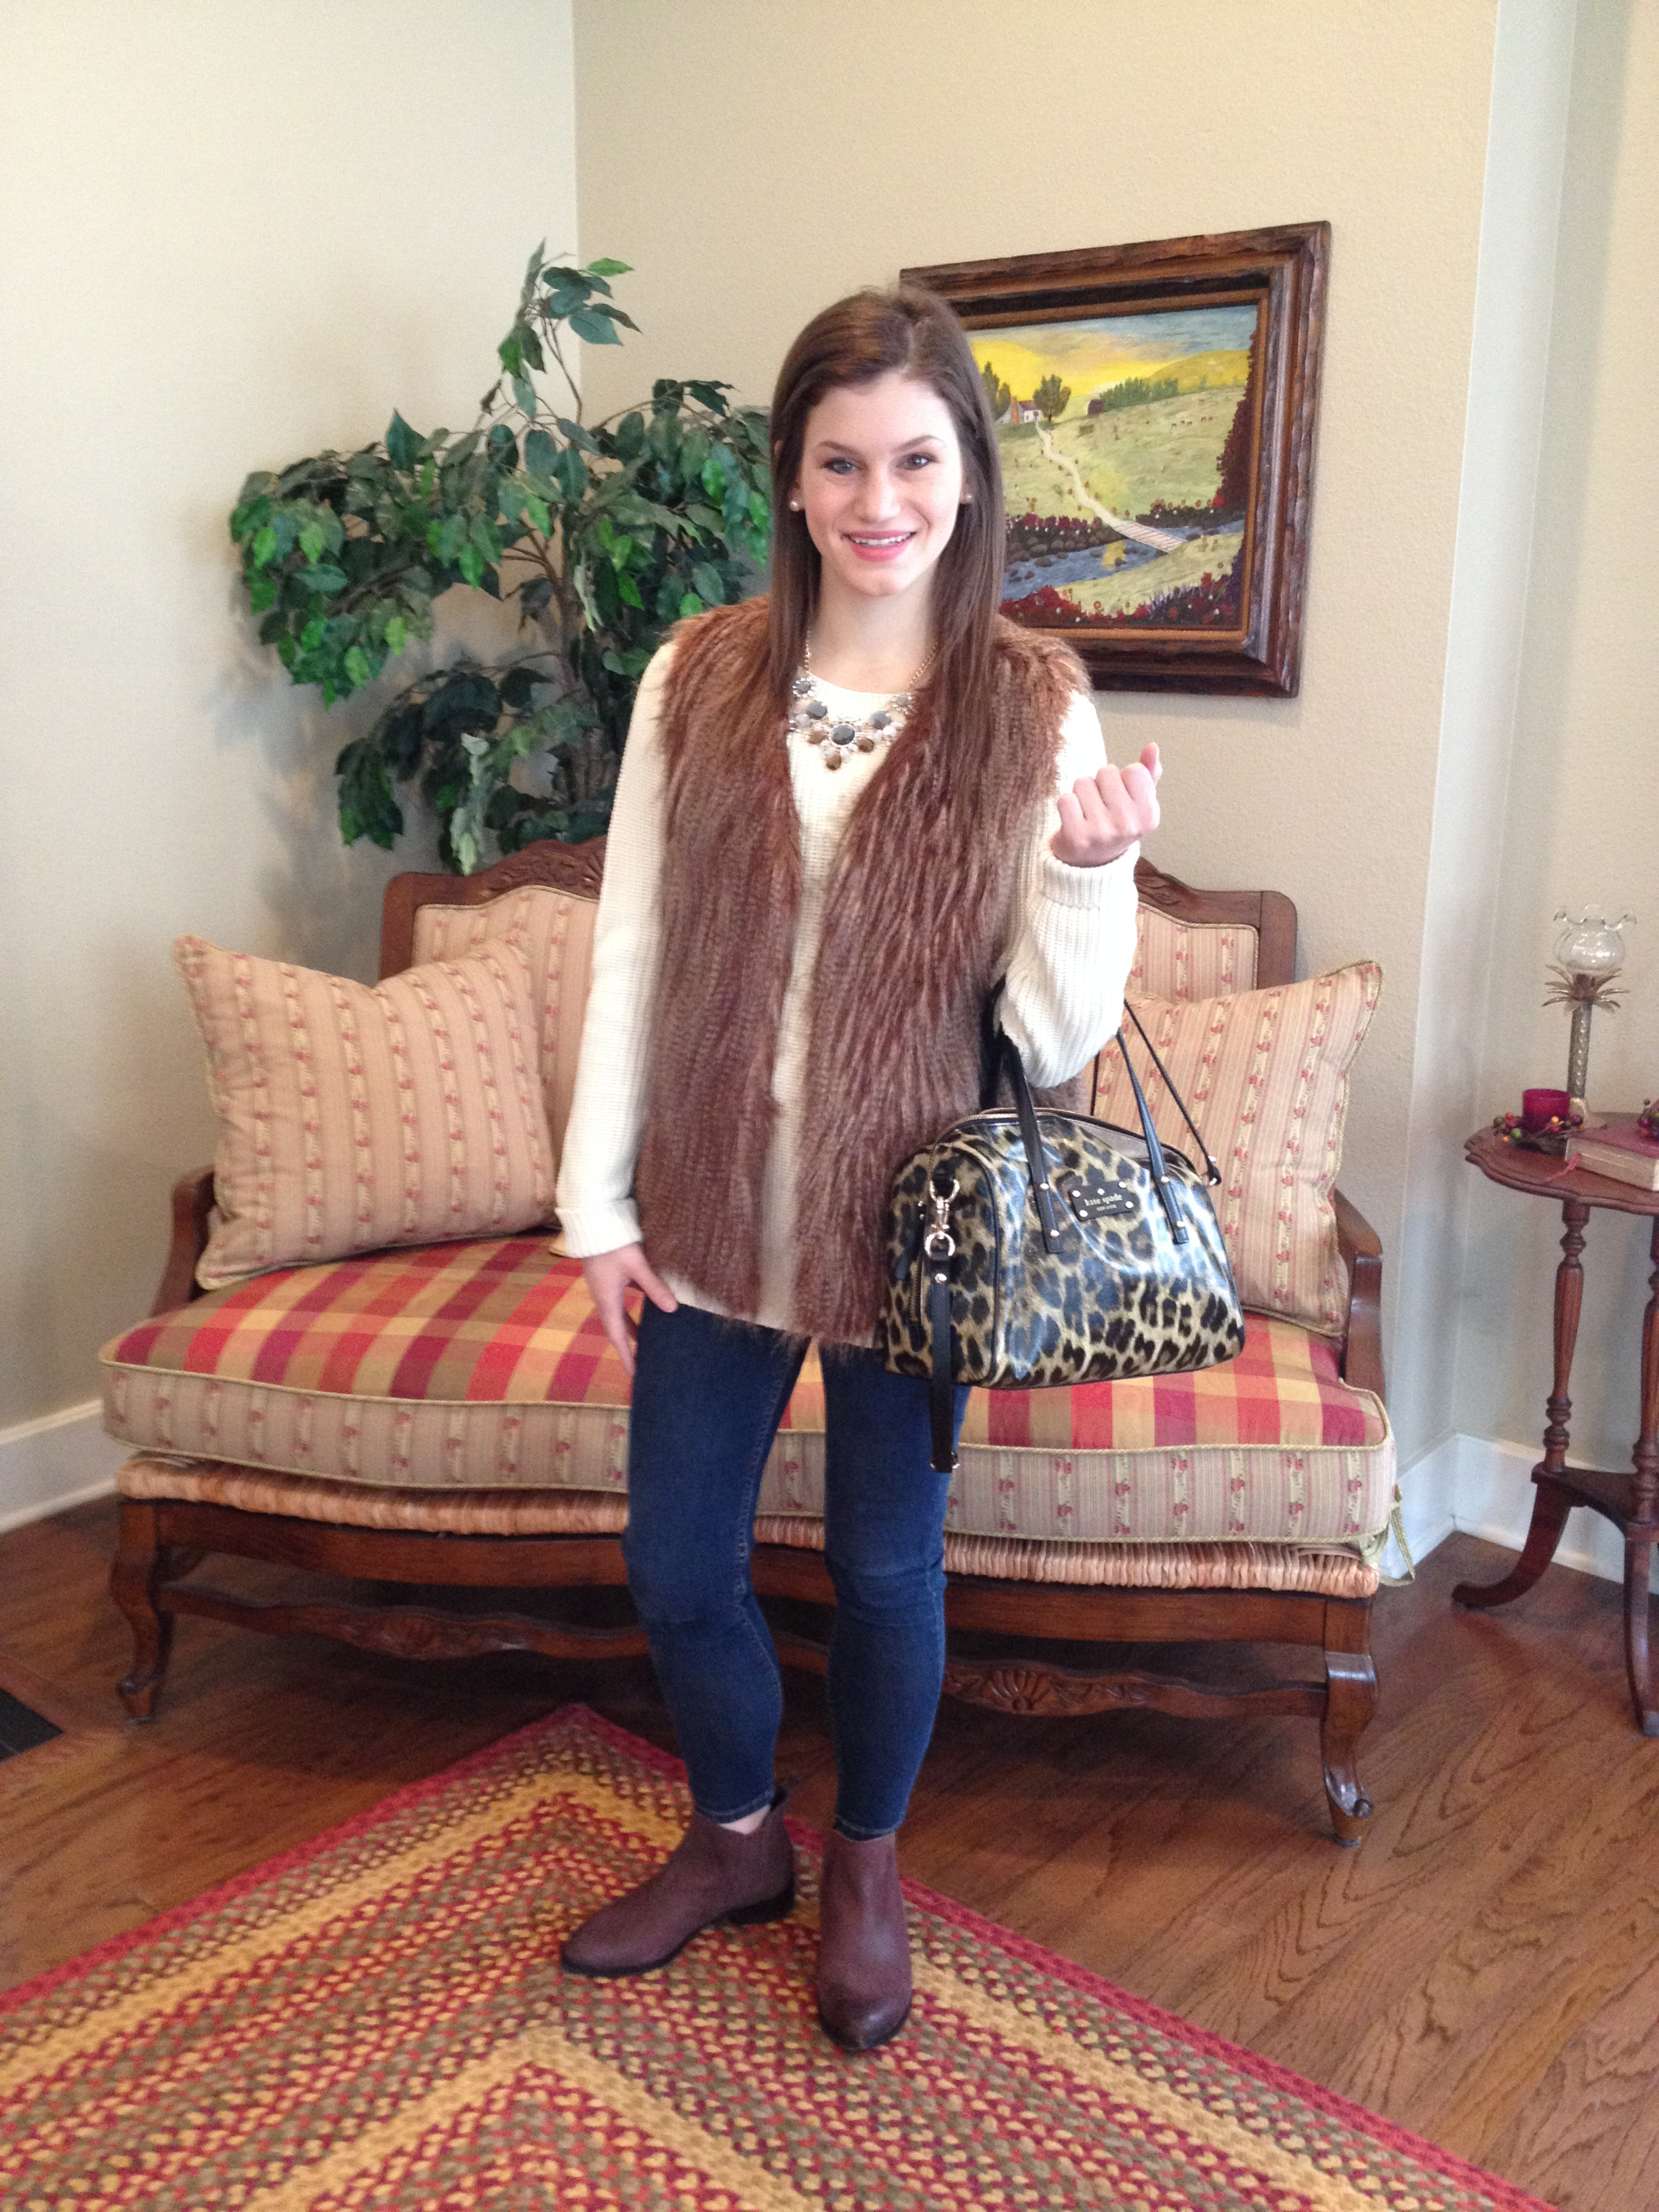 Sweater: JCPenney(only $14.99!), Vest: Francesca's, Necklace: Marley Lillyc/o, Purse: Kate Spade, similar, Booties: Gianni Bini